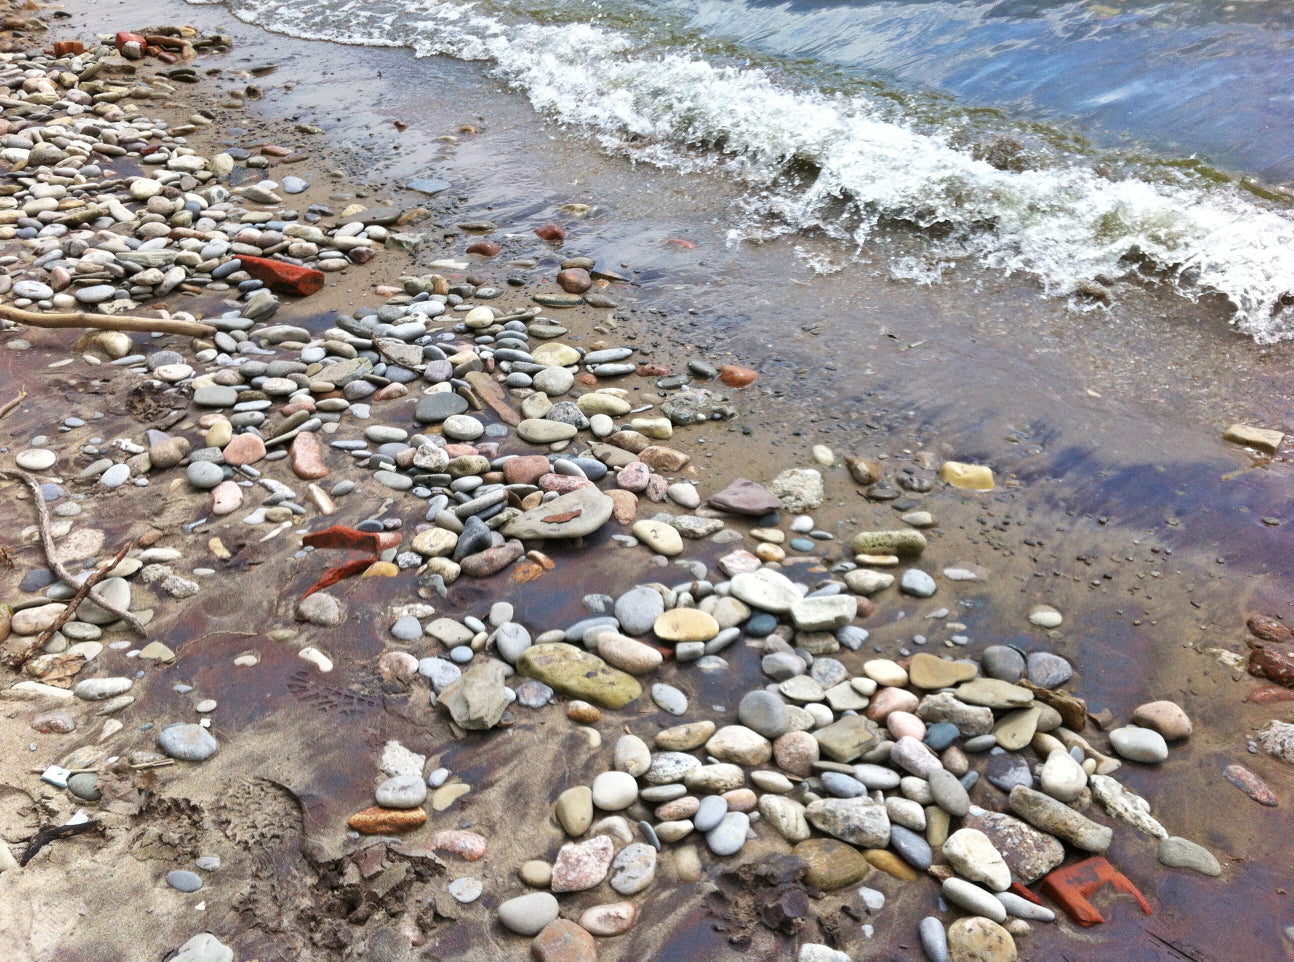 ROCKY BEACH, a Photograph by Ronnie Lebow